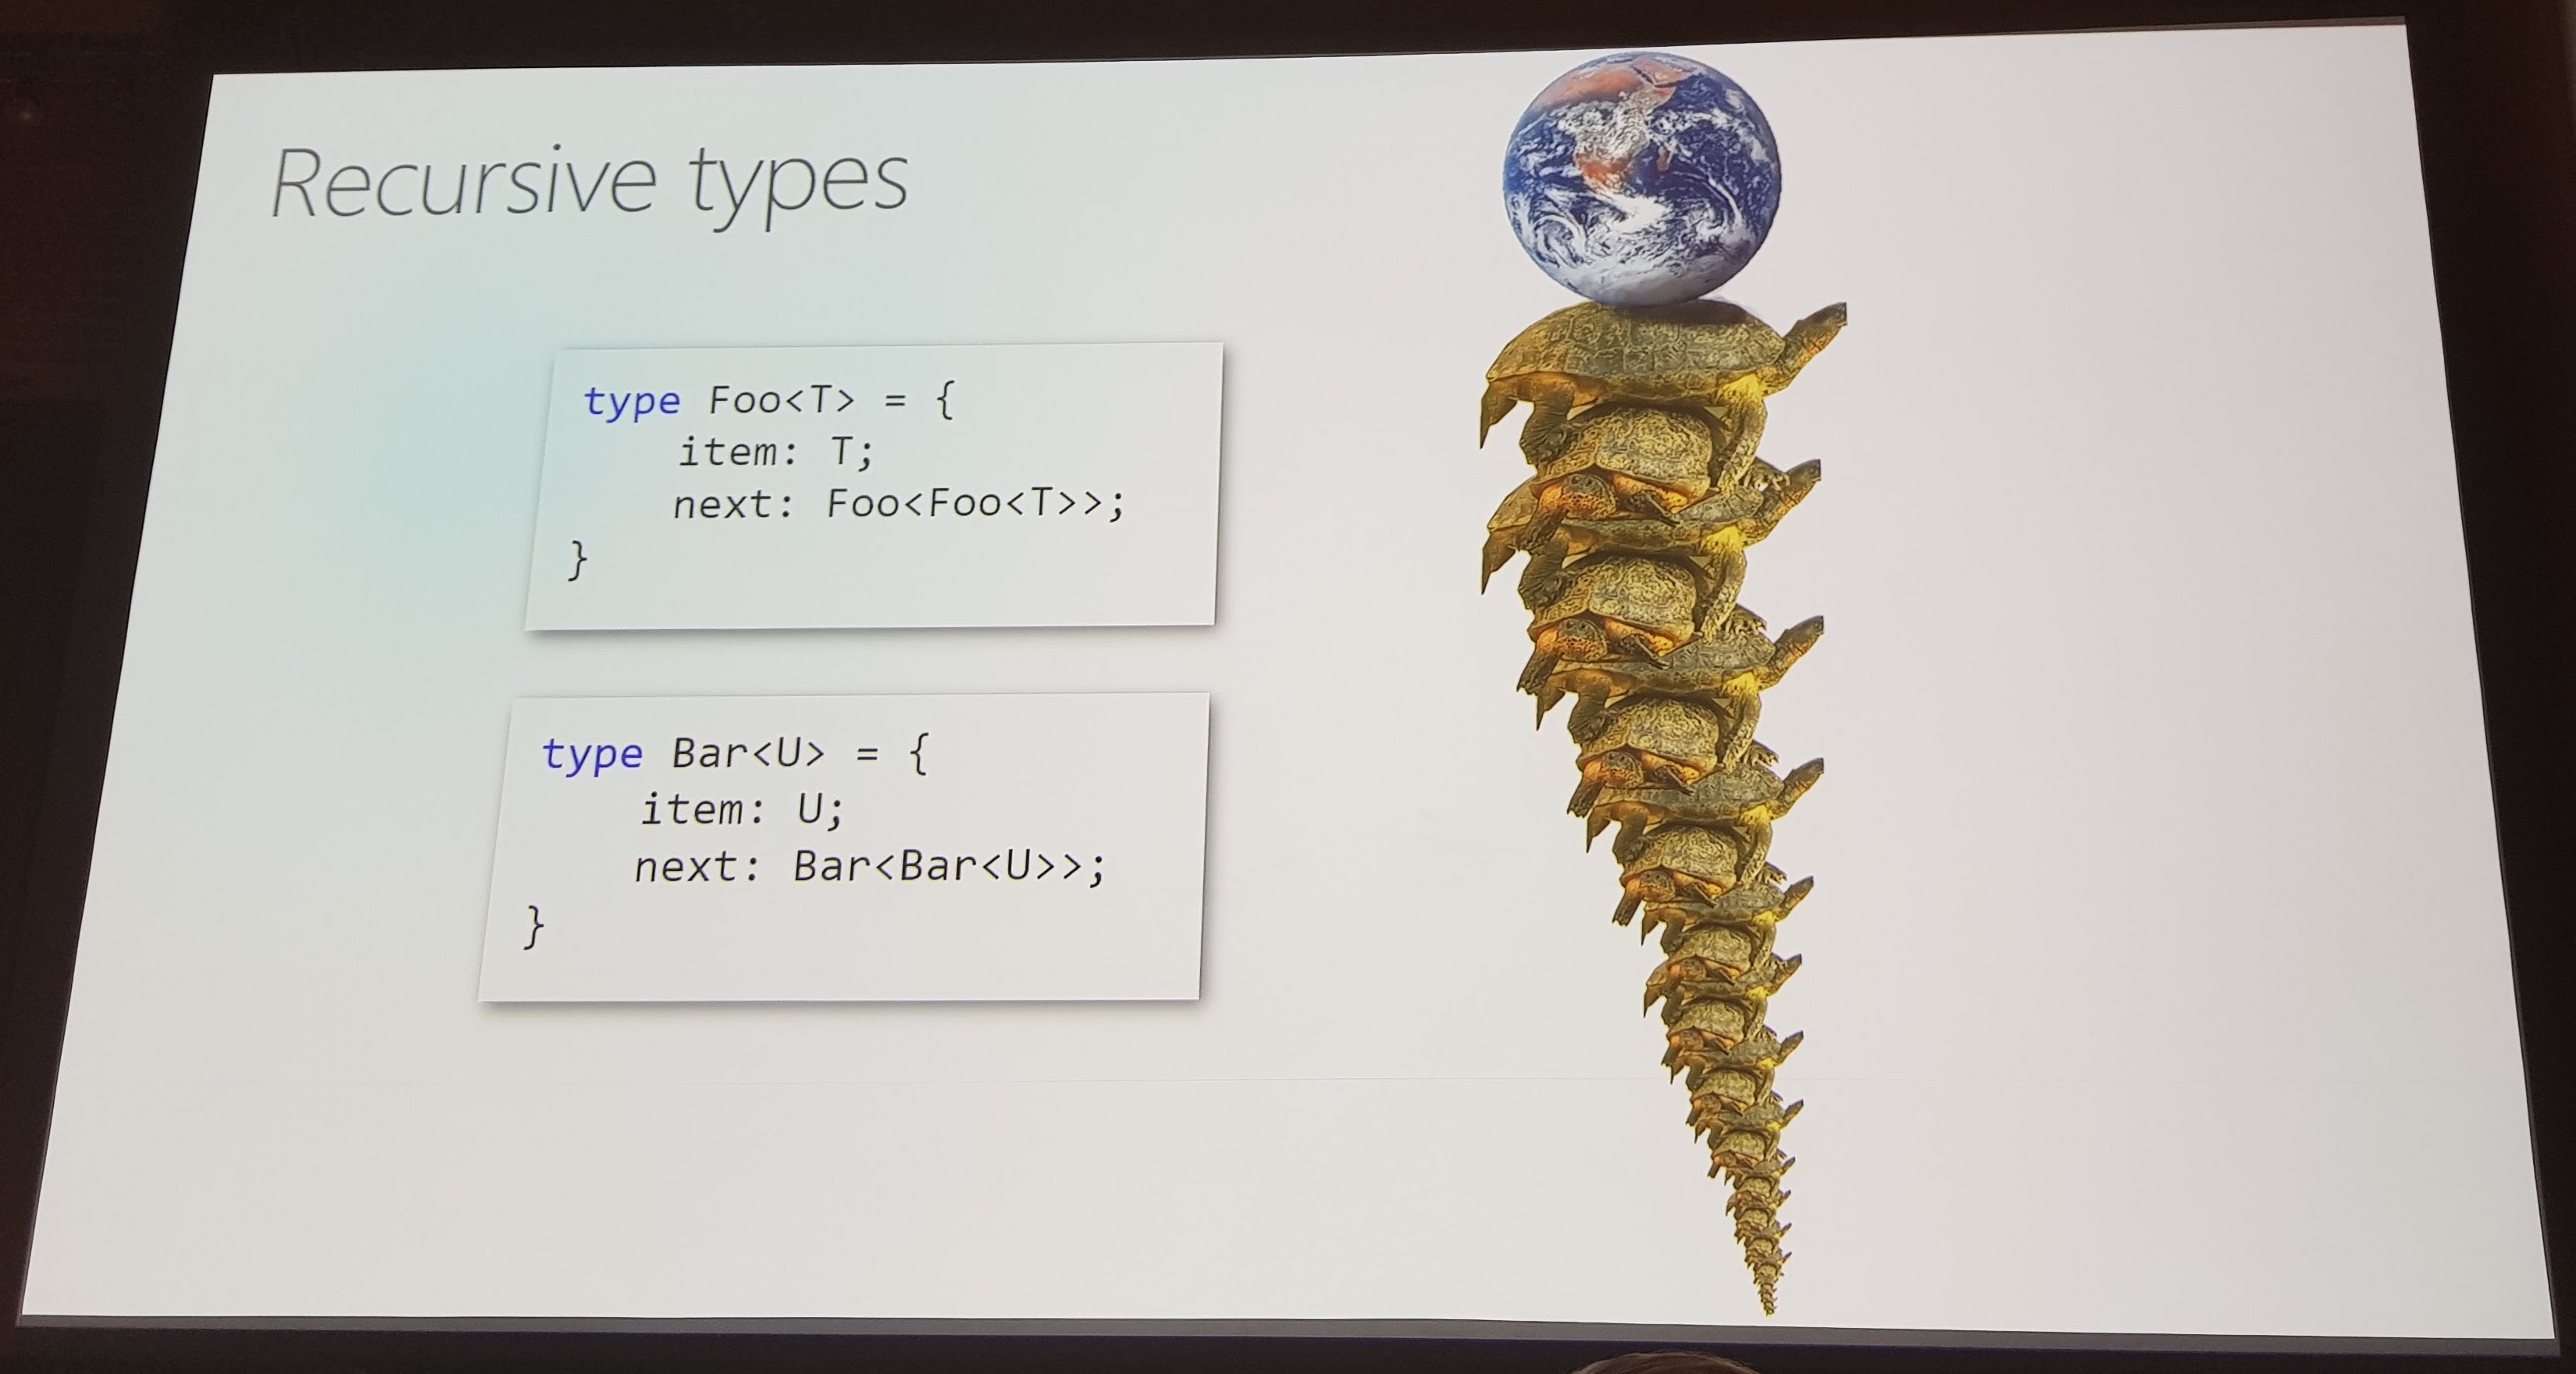 Slide equating recursive types to an infinite stack of turtles supporting the Earth